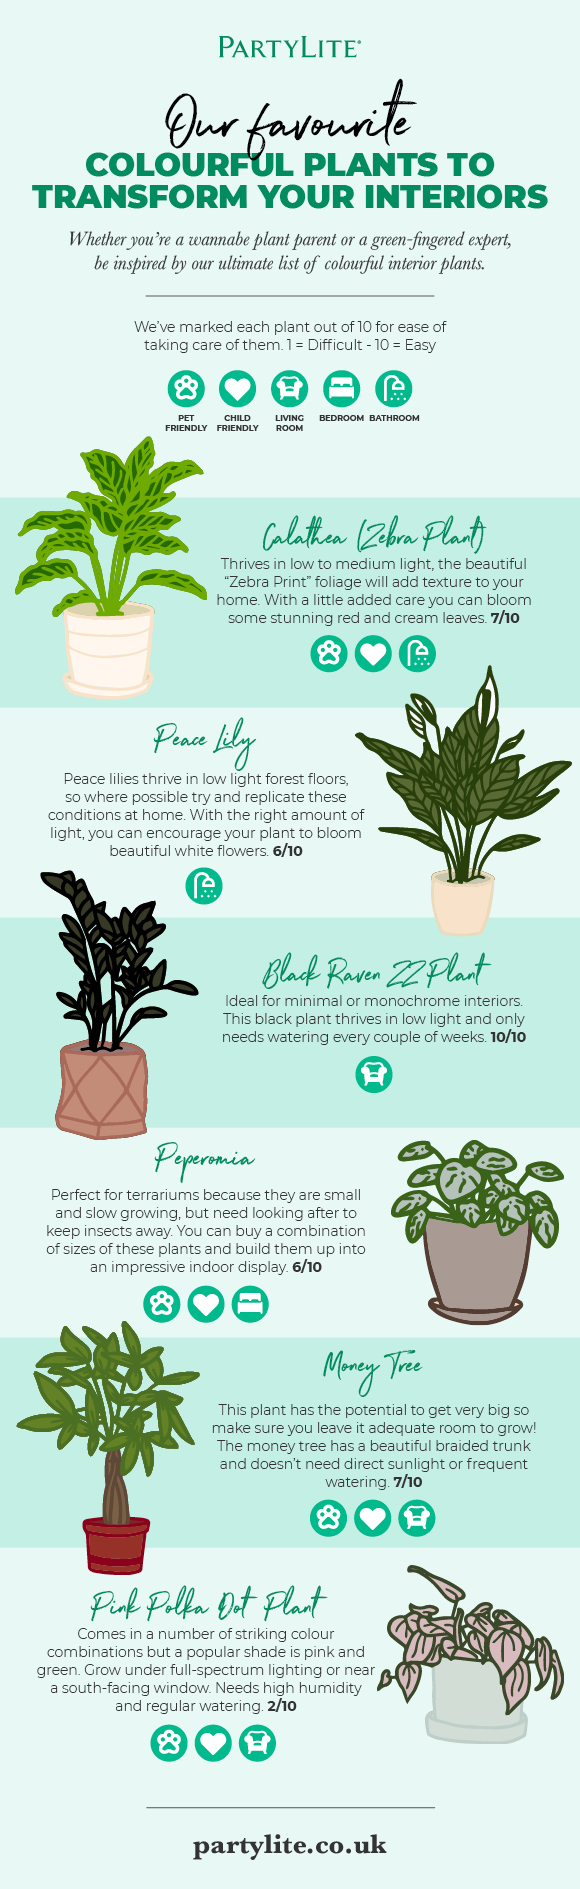 Colourful Plants to Transform Your Interiors Infographic by PartyLite